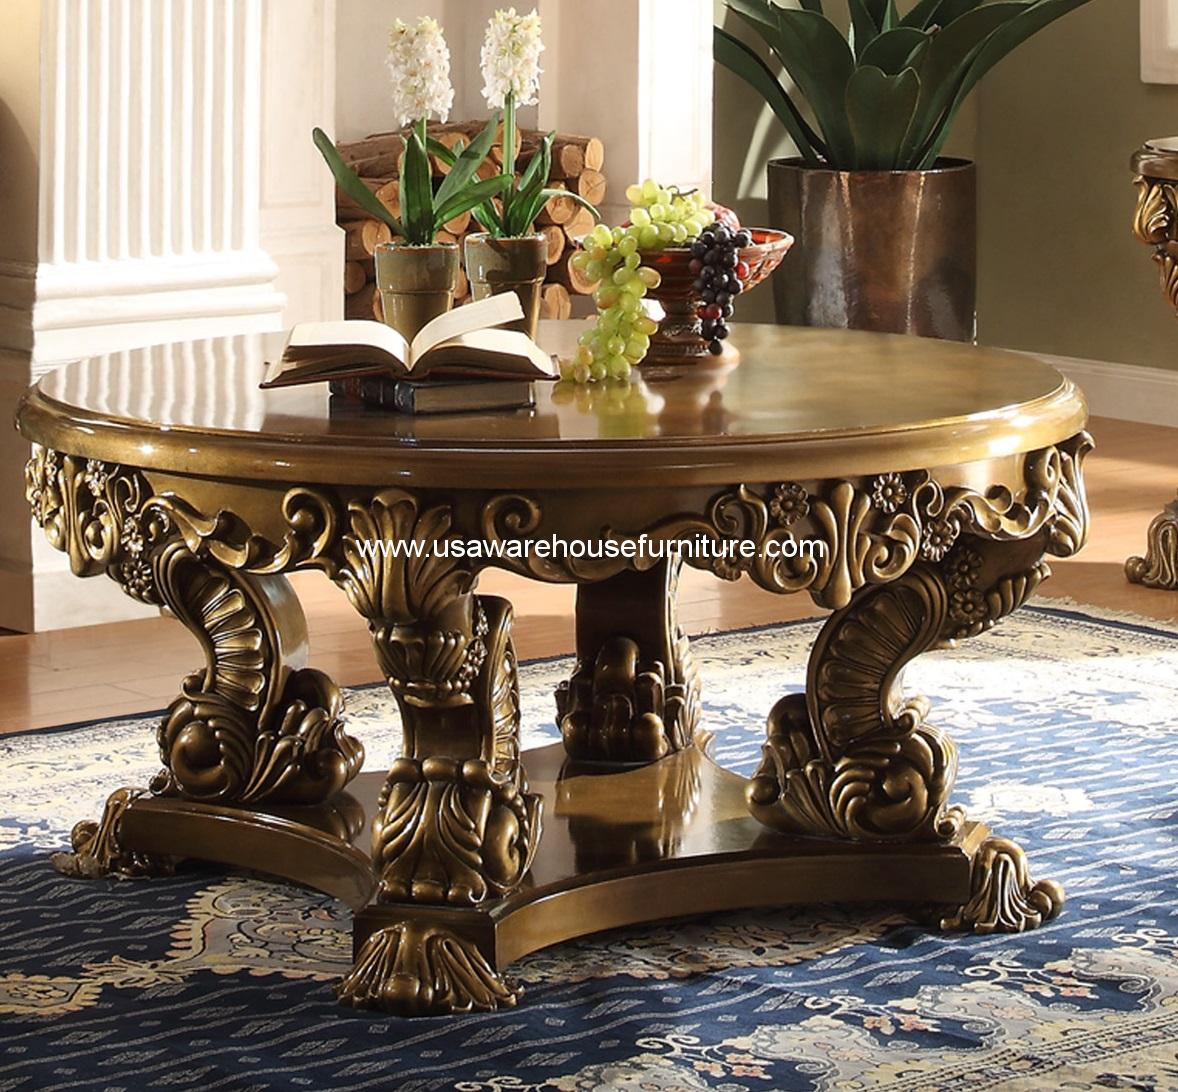 Victorian Coffee Table Furniture: Homey Design HD-8008 Victorian Palace Round Cocktail Table